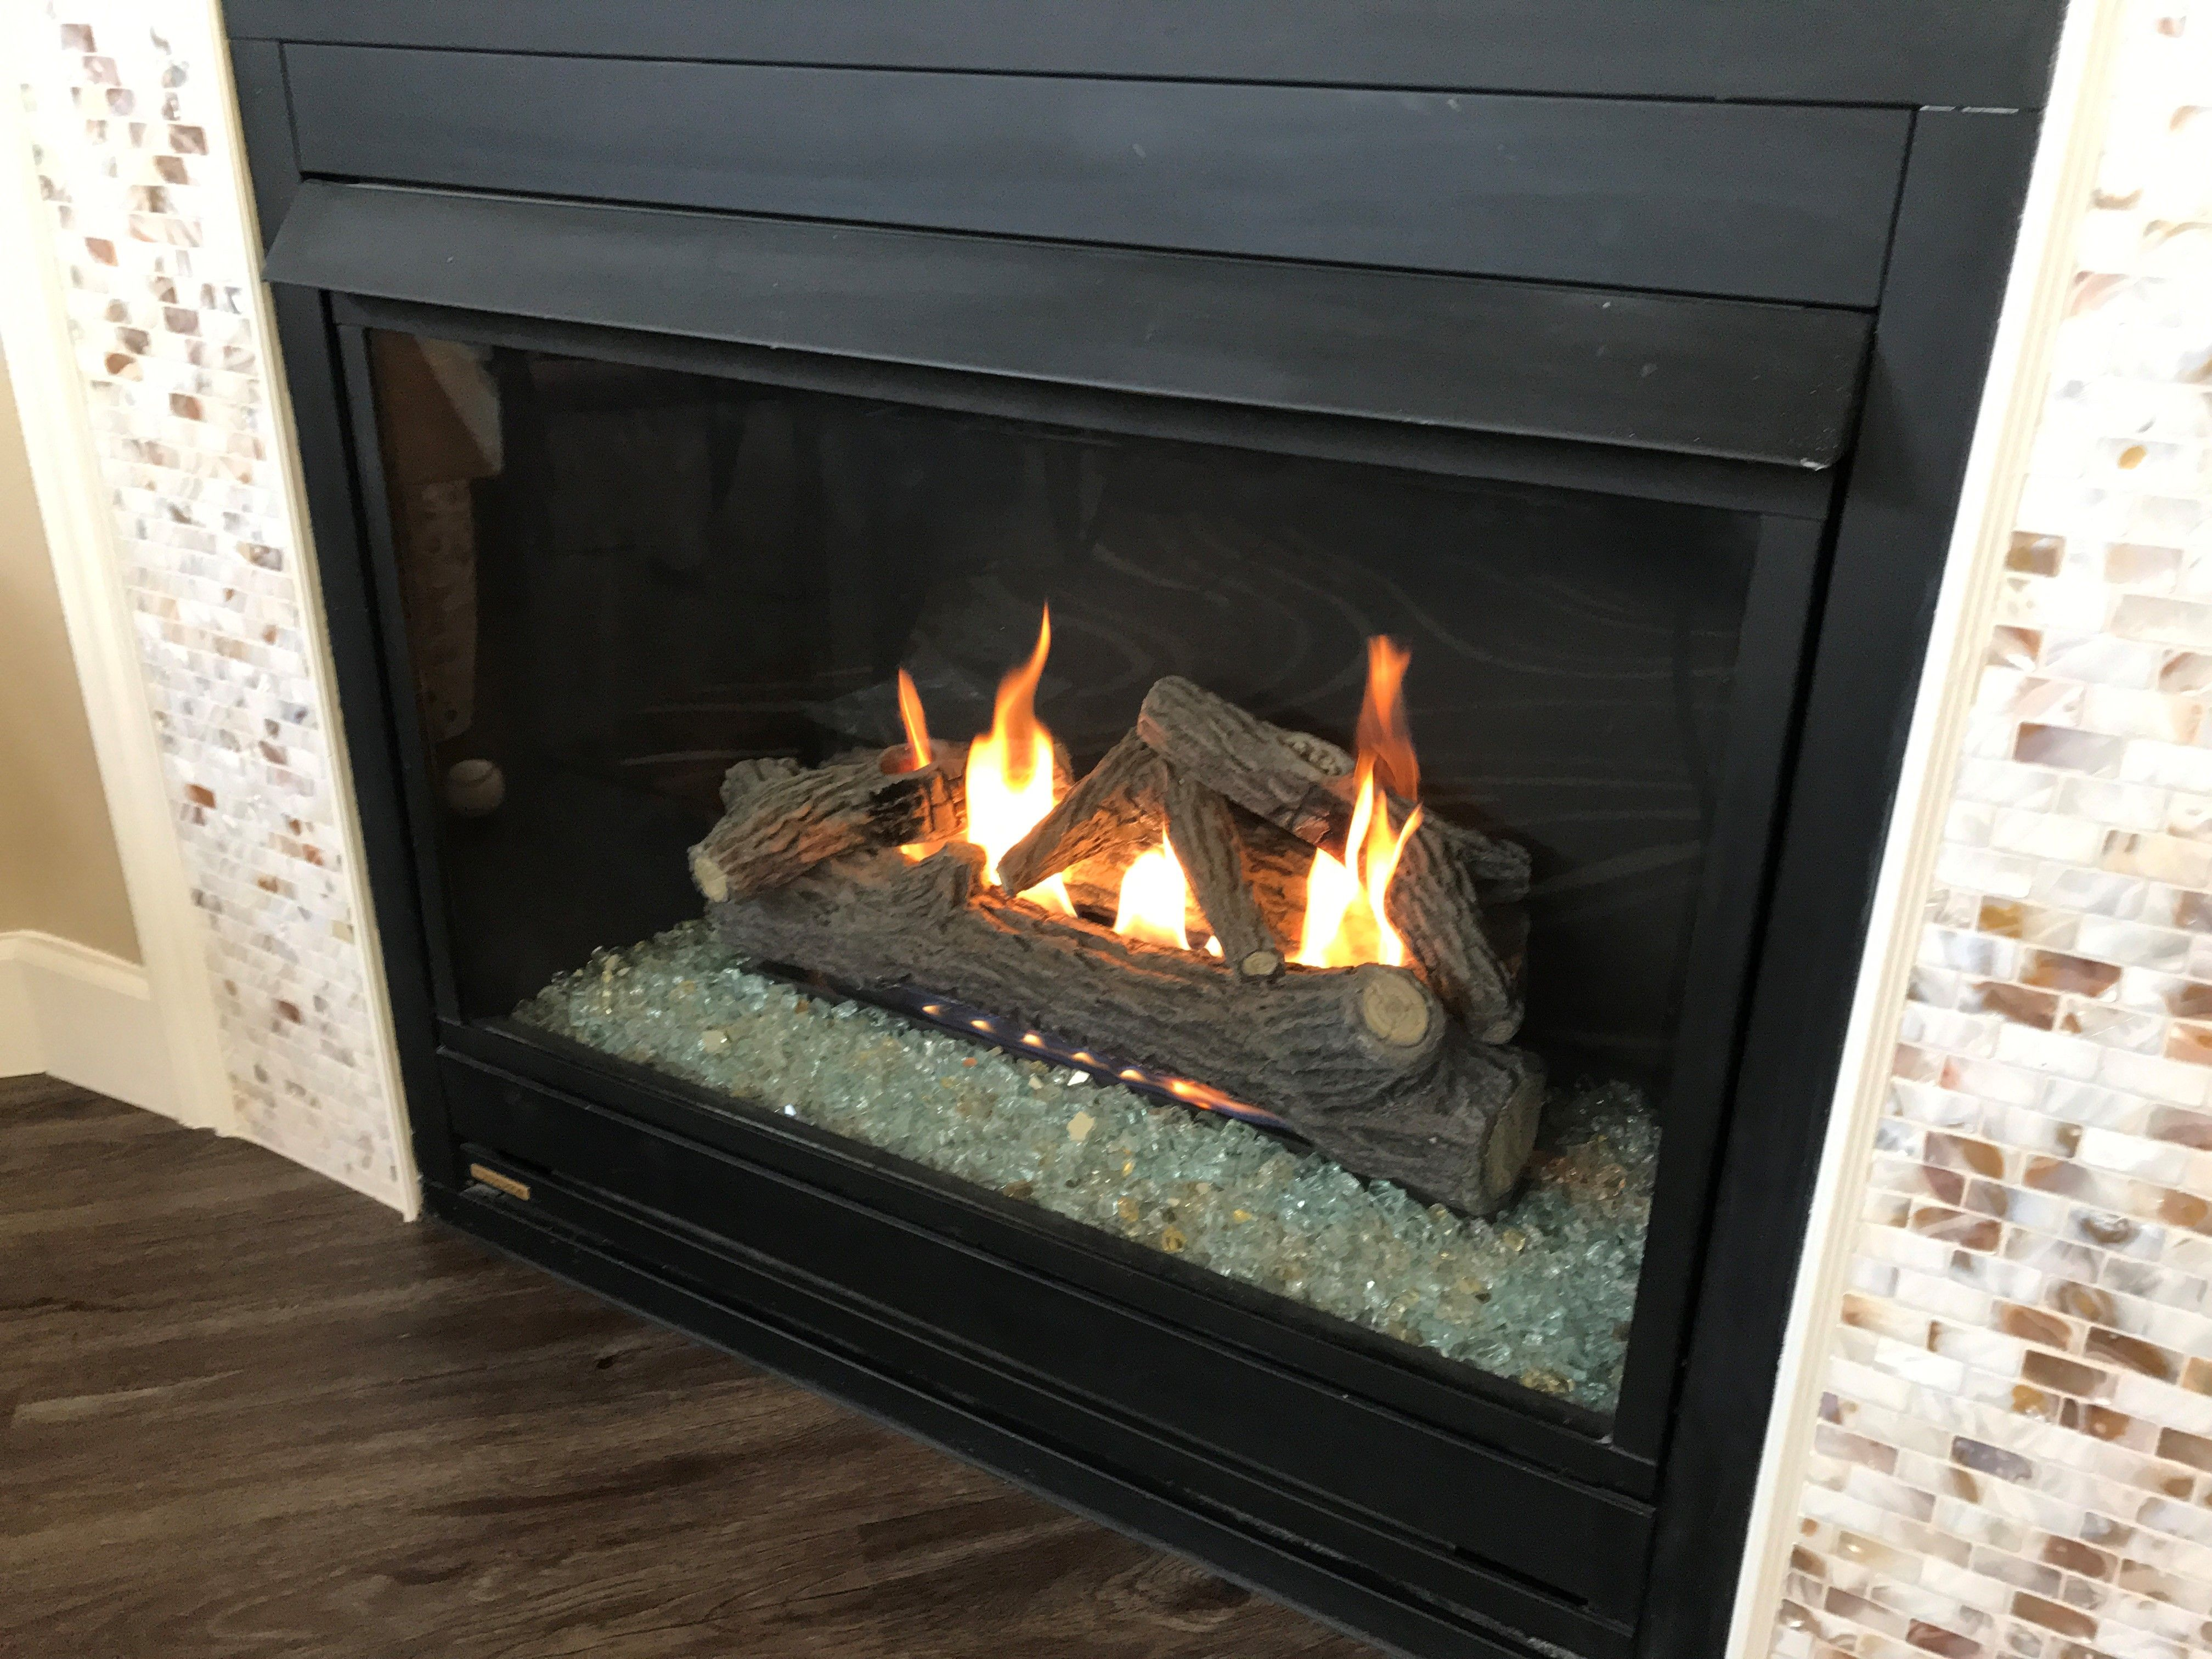 Best Colors For Fire Glass Blends Fire Glass Fire Glass Fireplace Fireplace Glass Rocks